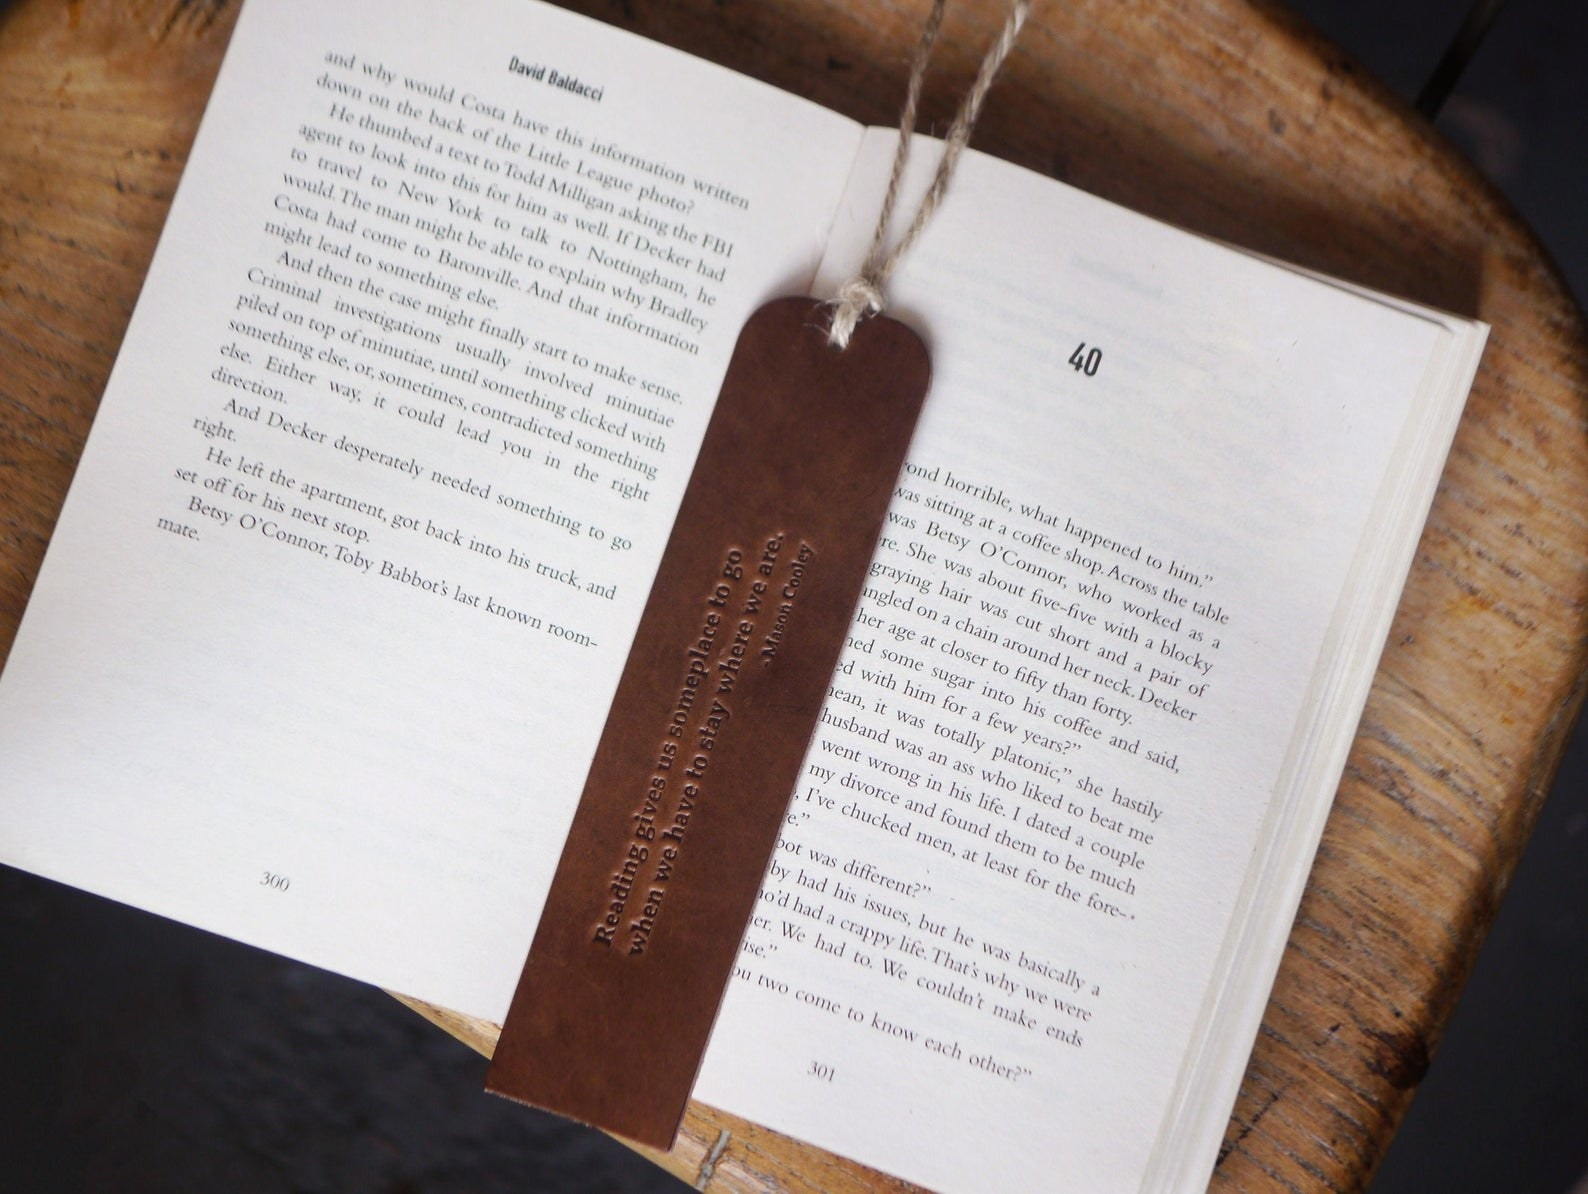 A brown leather bookmark in between pages of a book